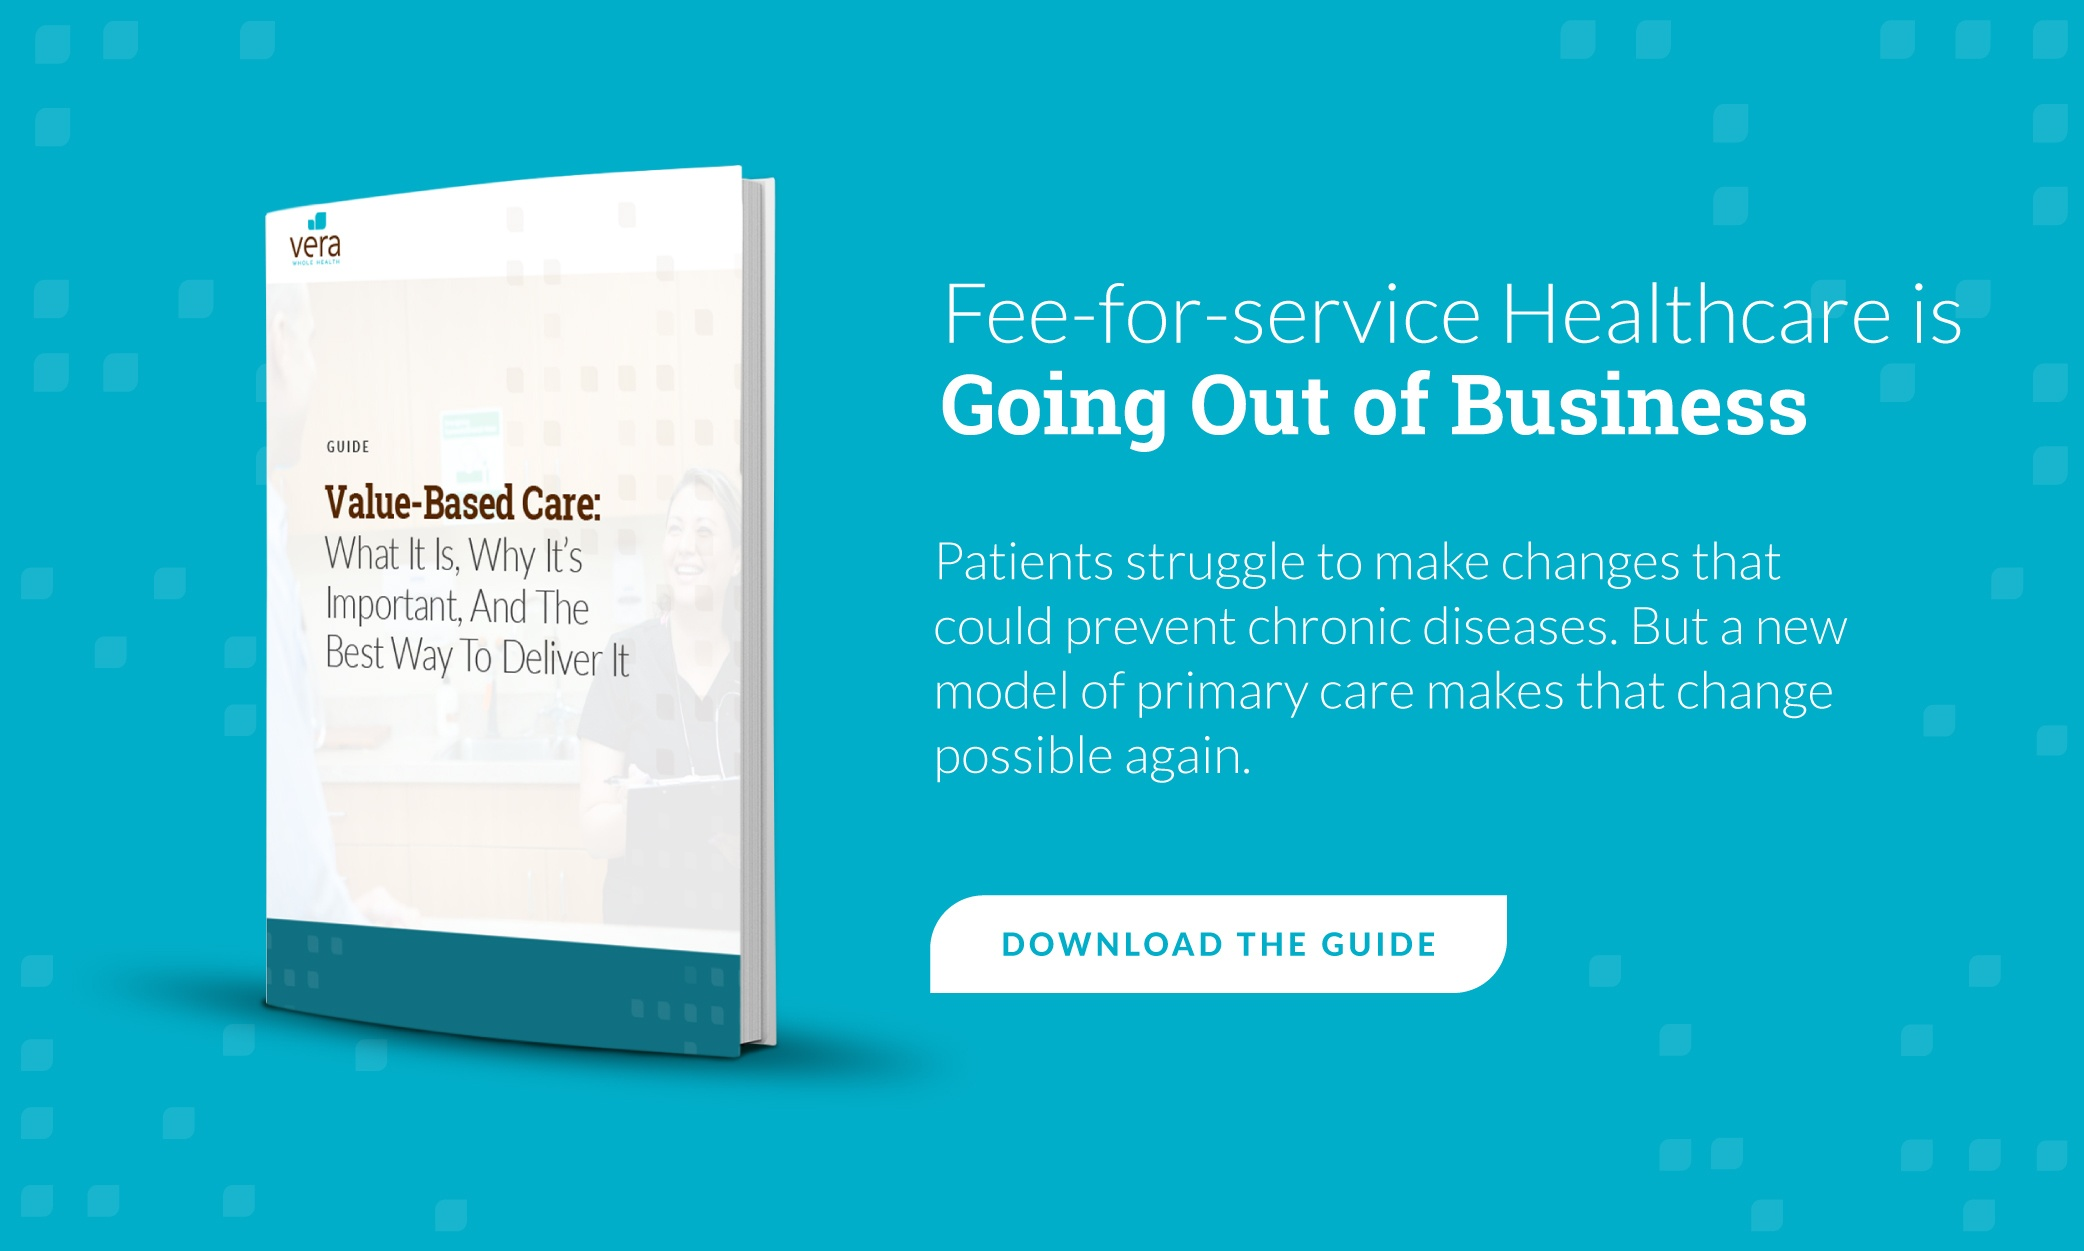 value-based care: what it is, why it's important, and the best way to deliver it: free guide call-to-action